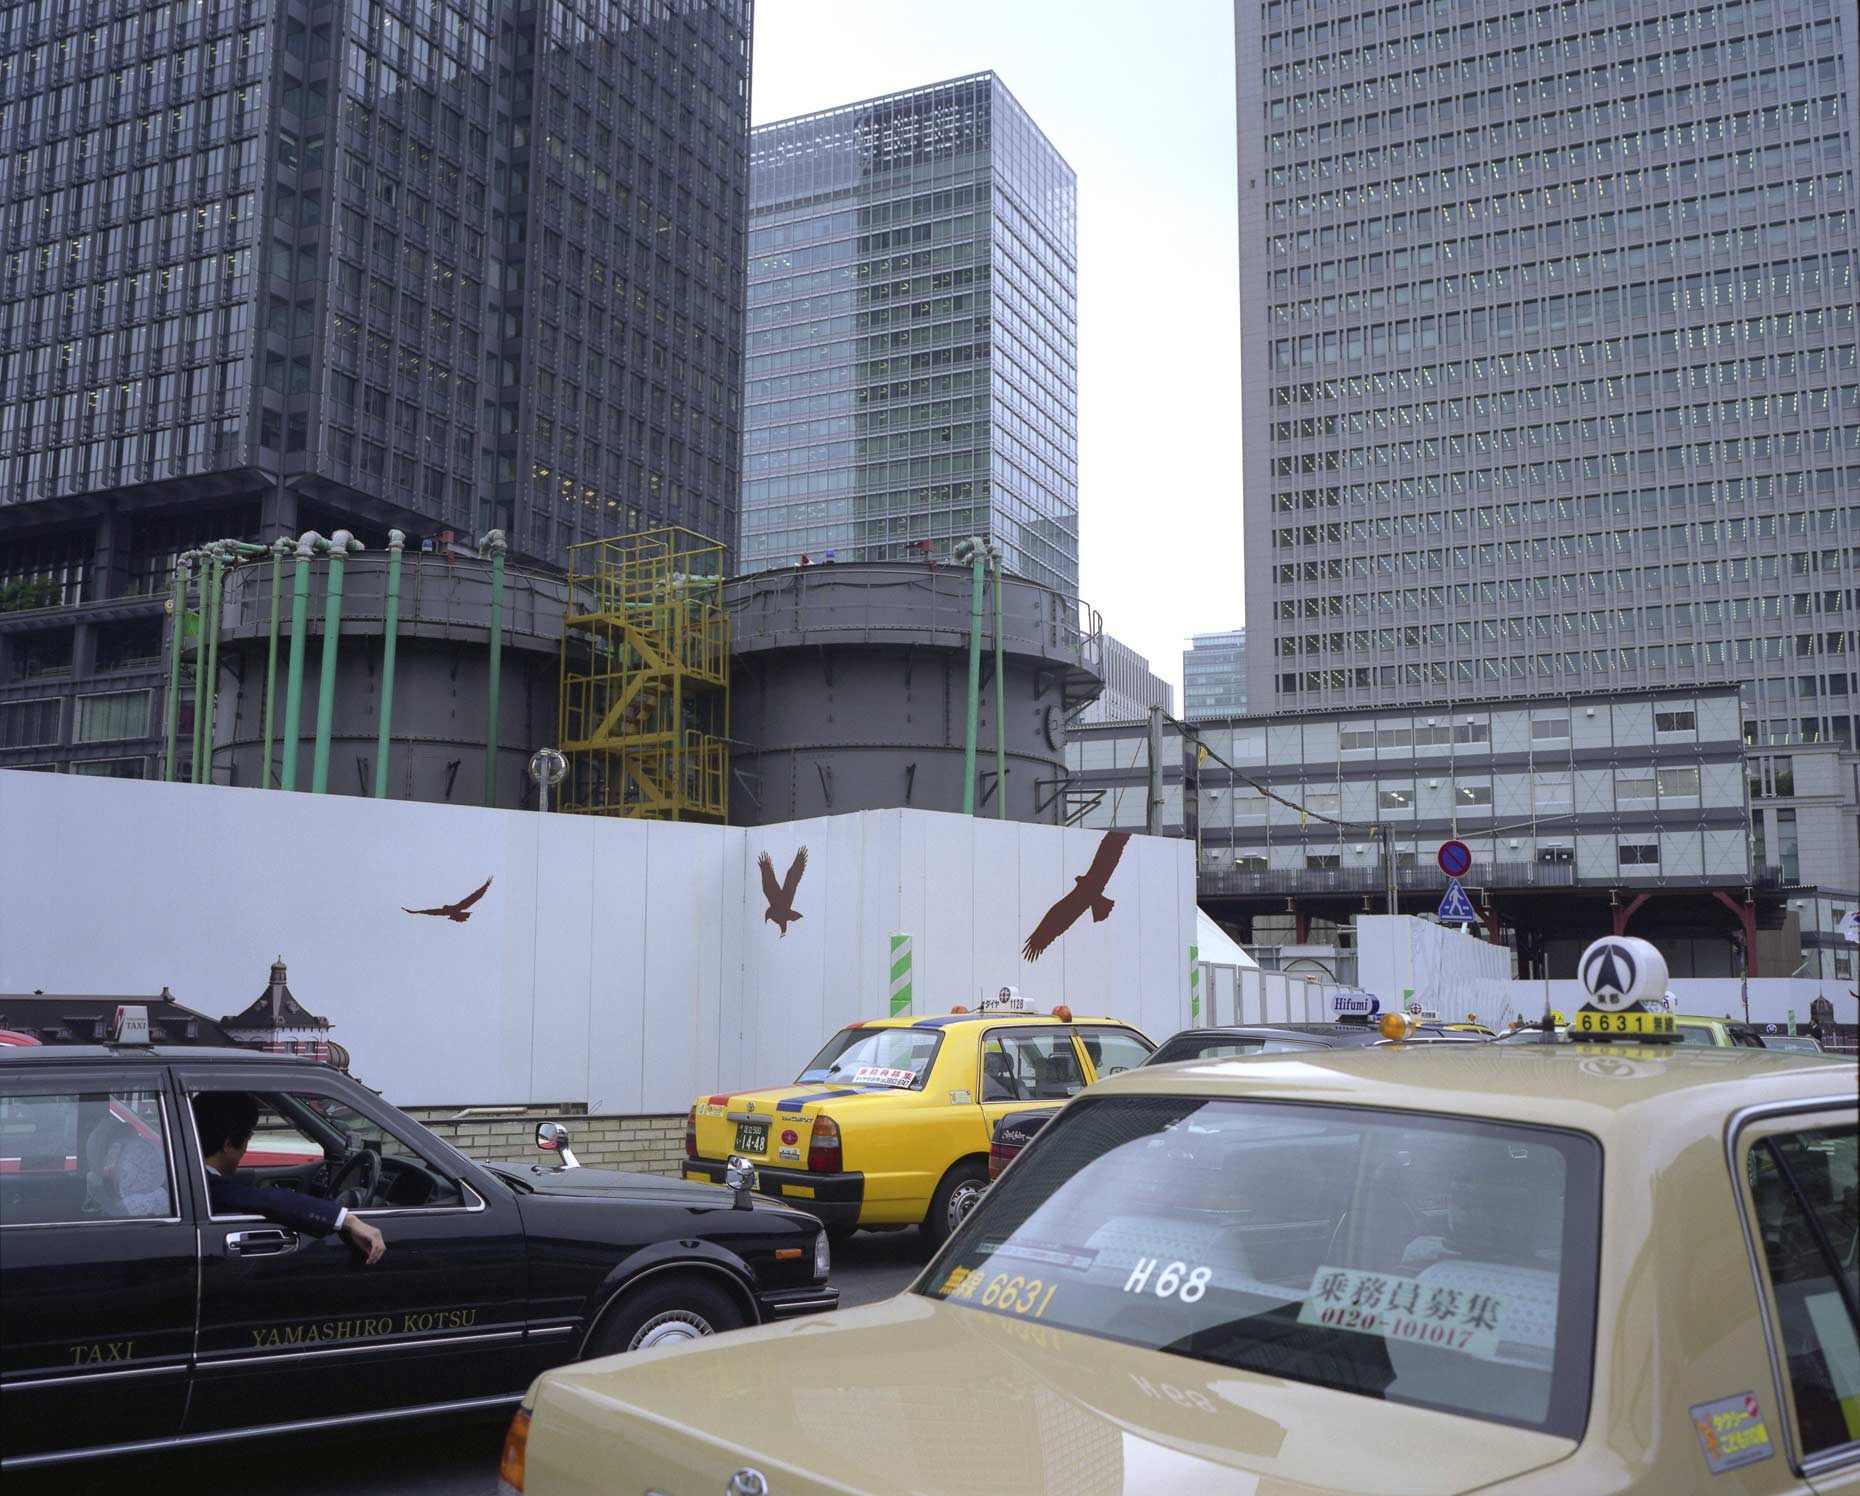 Billboards depicting birds and scenes of nature, Tokyo, Japan.